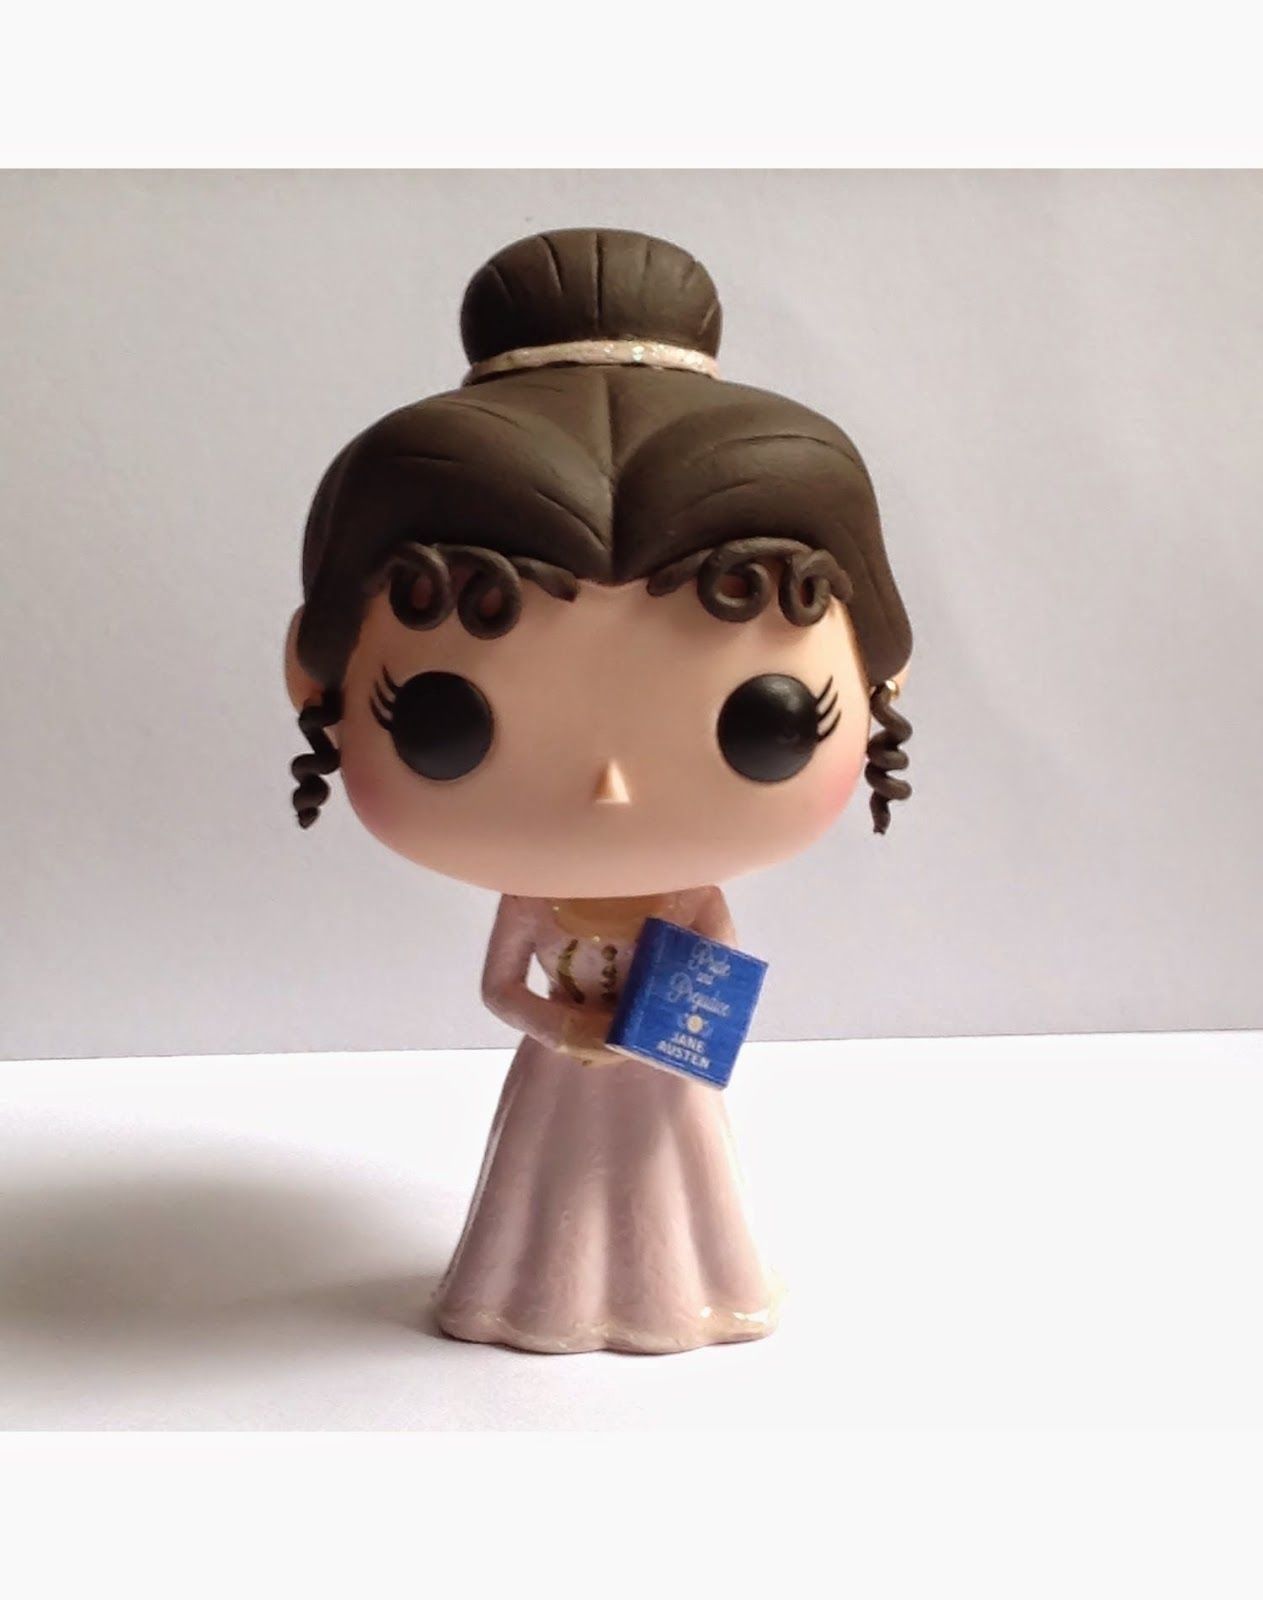 To Swoon Or Not To Swoon: Funko Pop: My 2nd Custom Pop I want my own ...